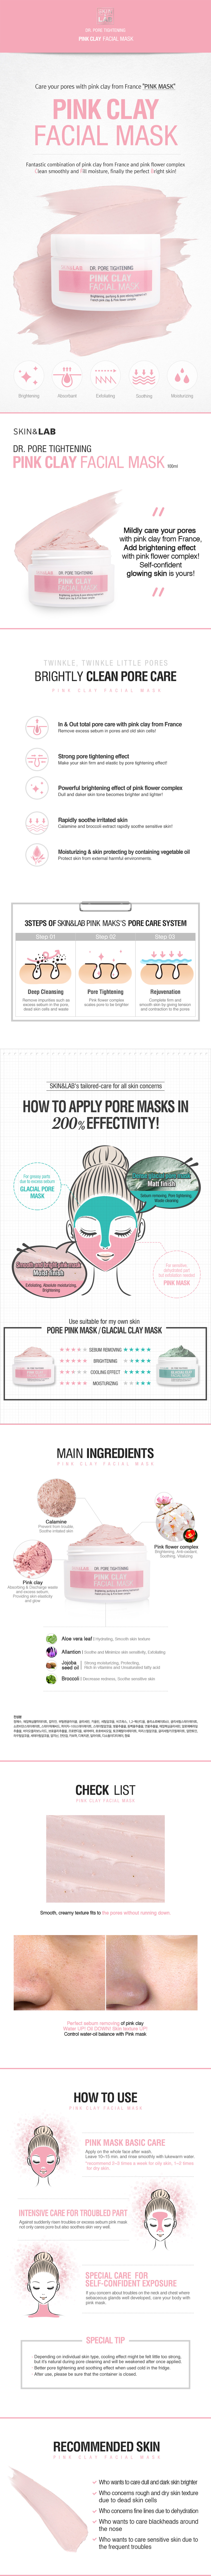 Dr Pore Tightening Pink Clay Mask